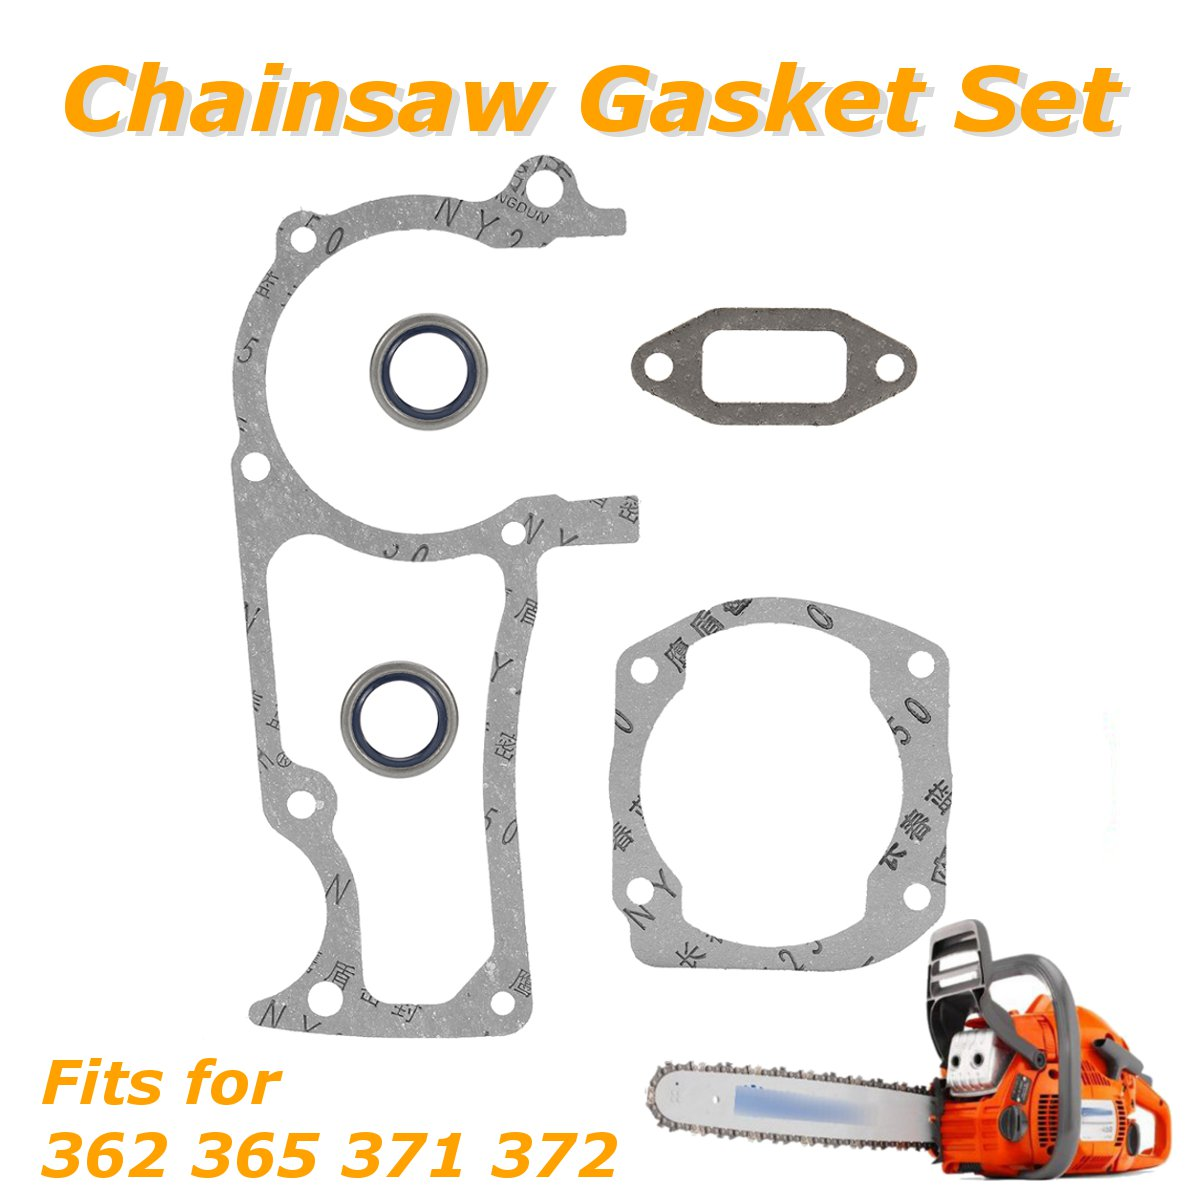 Chain Saw Gasket Set With Oil Seals For Husqvarna 362 365 371 372 Chainsaws Metal